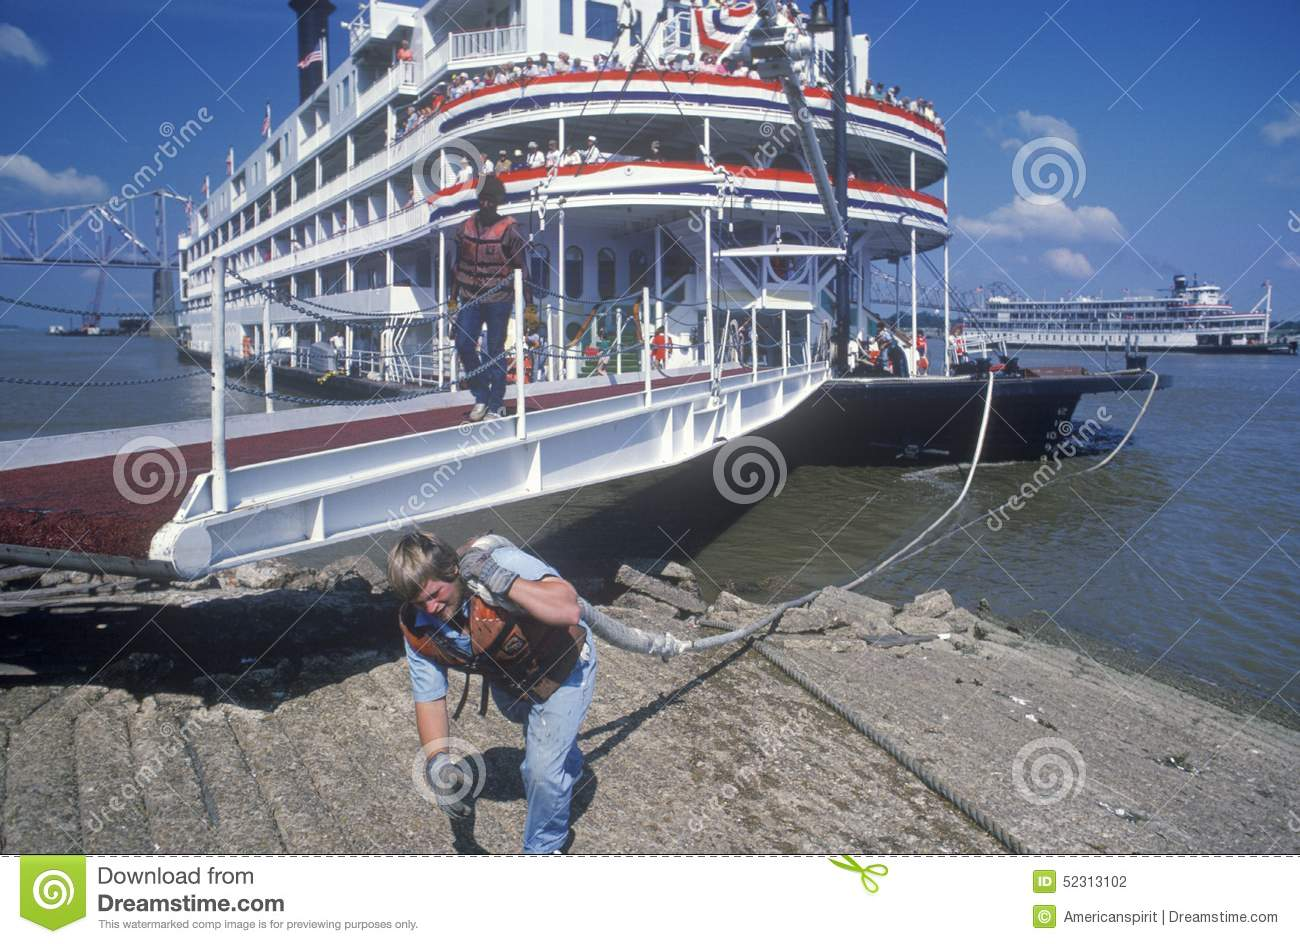 A Crew Member Working On The Delta Queen River Boat, A Relic Of.